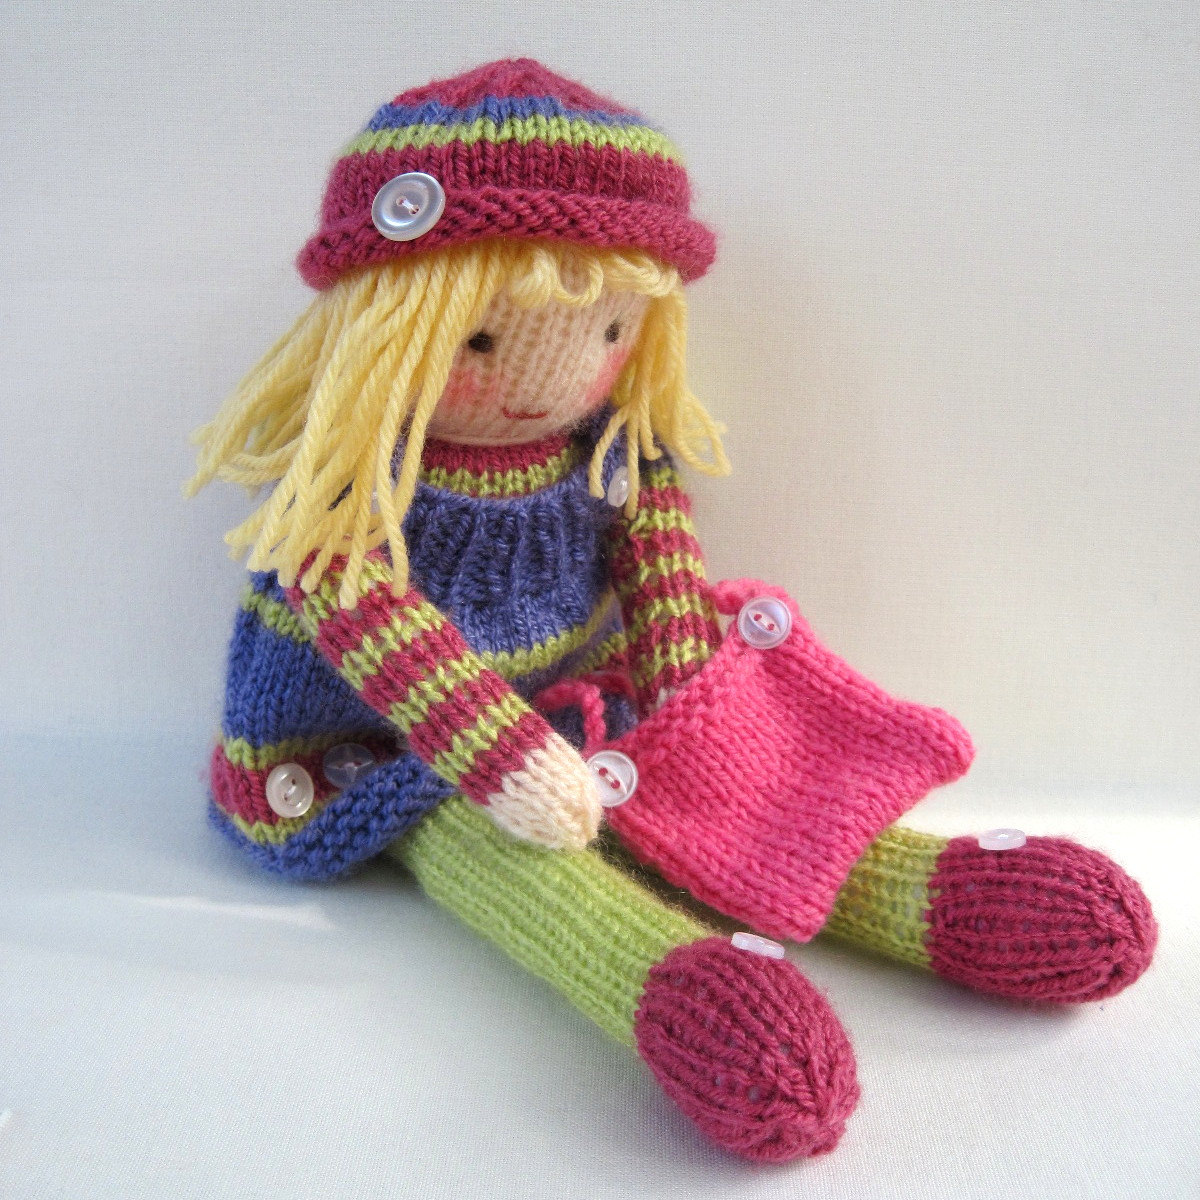 Knitted Doll Patterns | A Knitting Blog